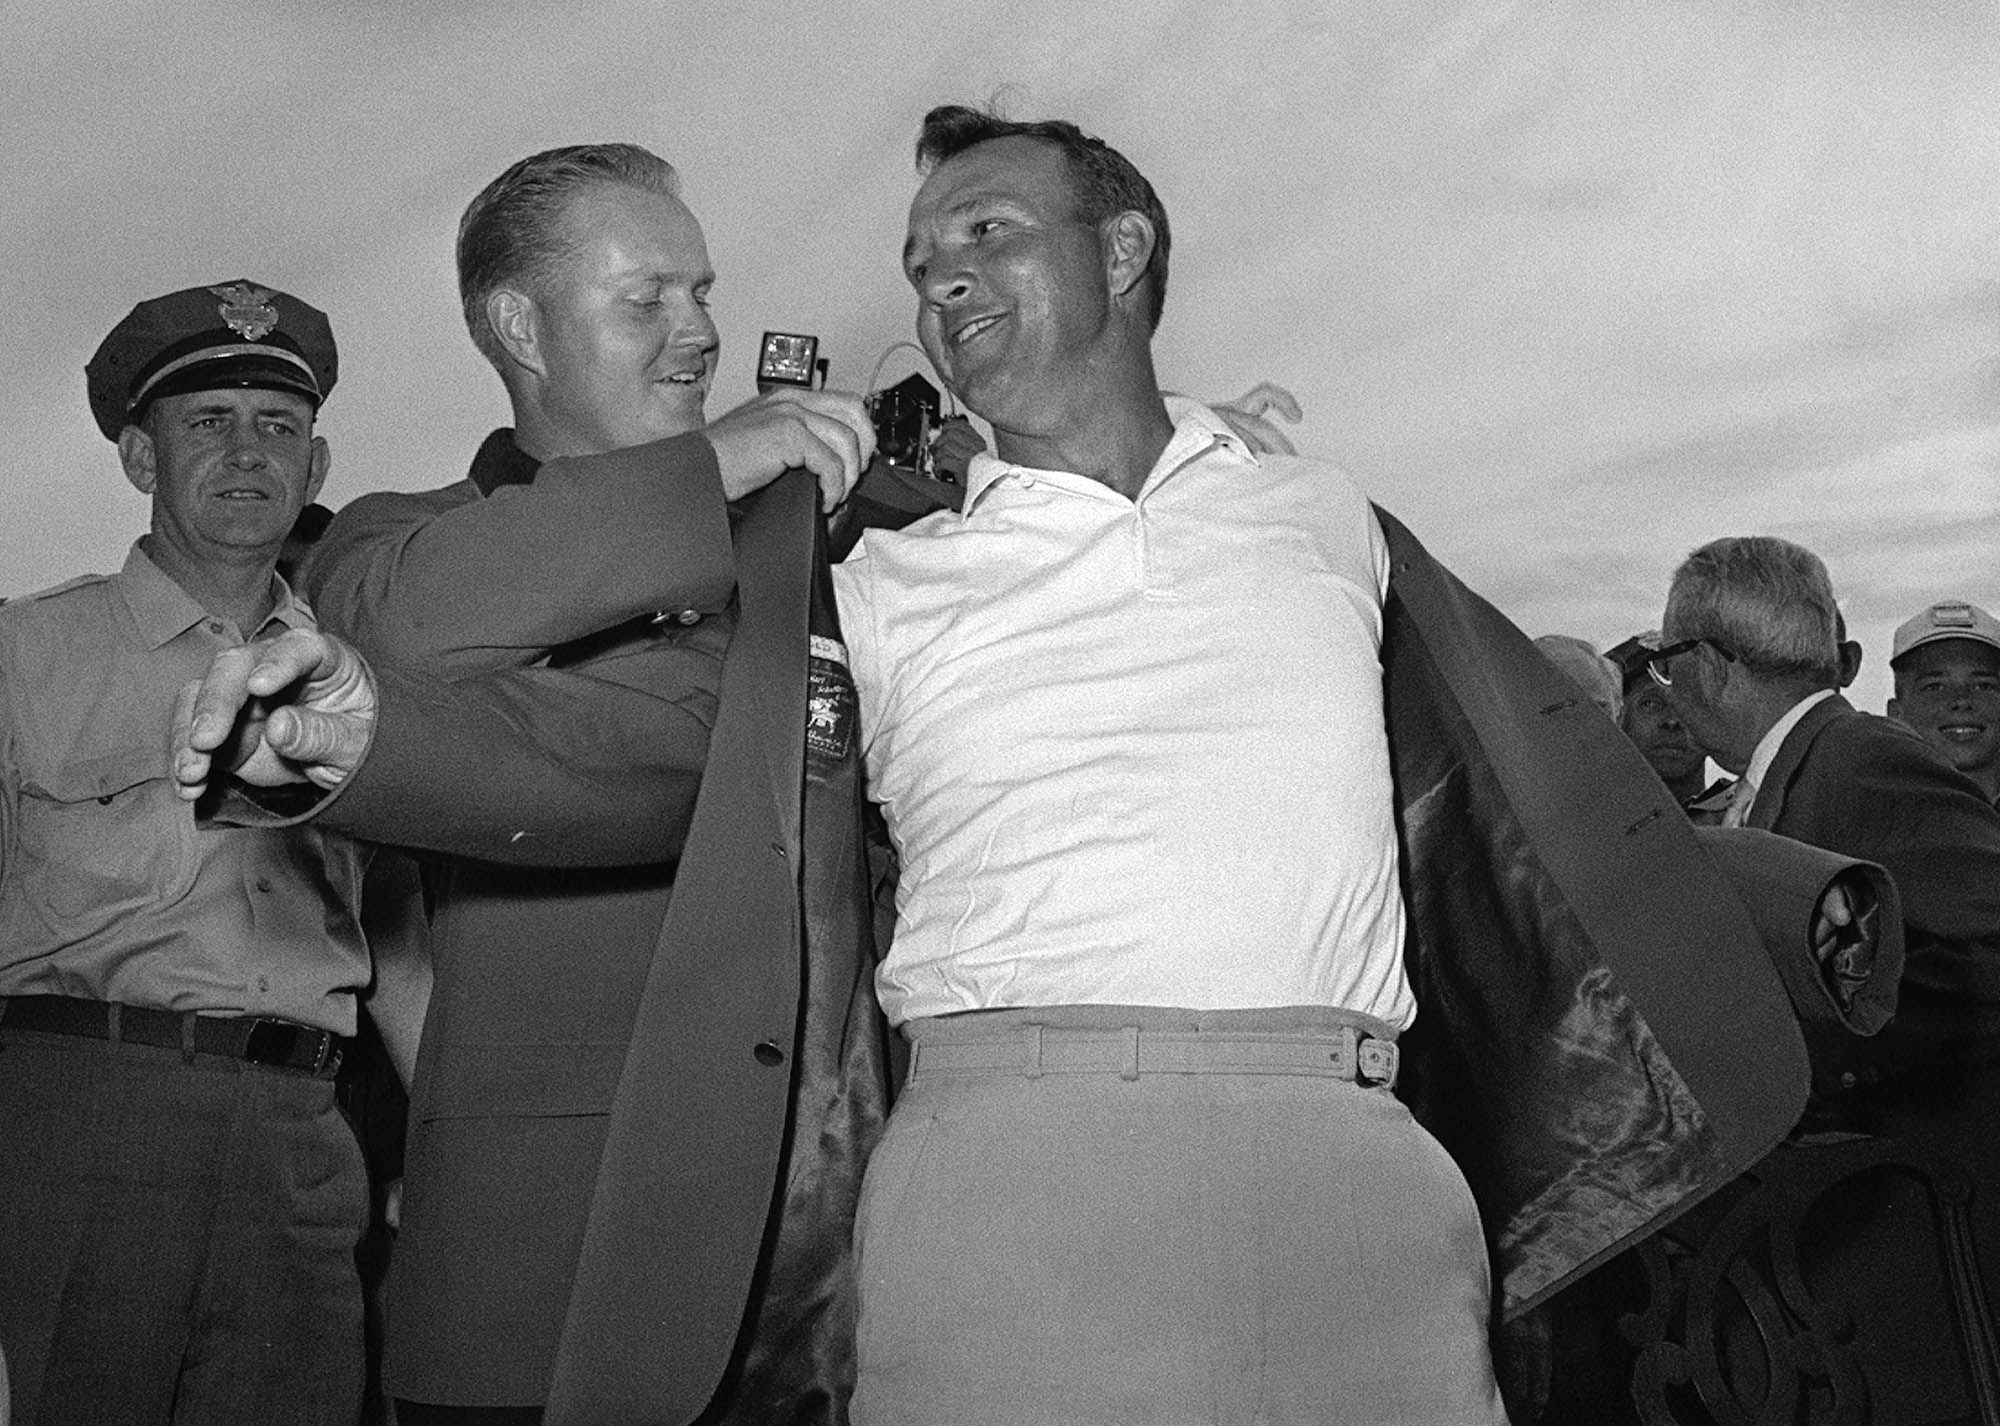 Arnold Palmer, right, slips into his green jacket with help from Jack Nicklaus after winning the Masters golf championship, in Augusta, Ga. on April 12, 1964.